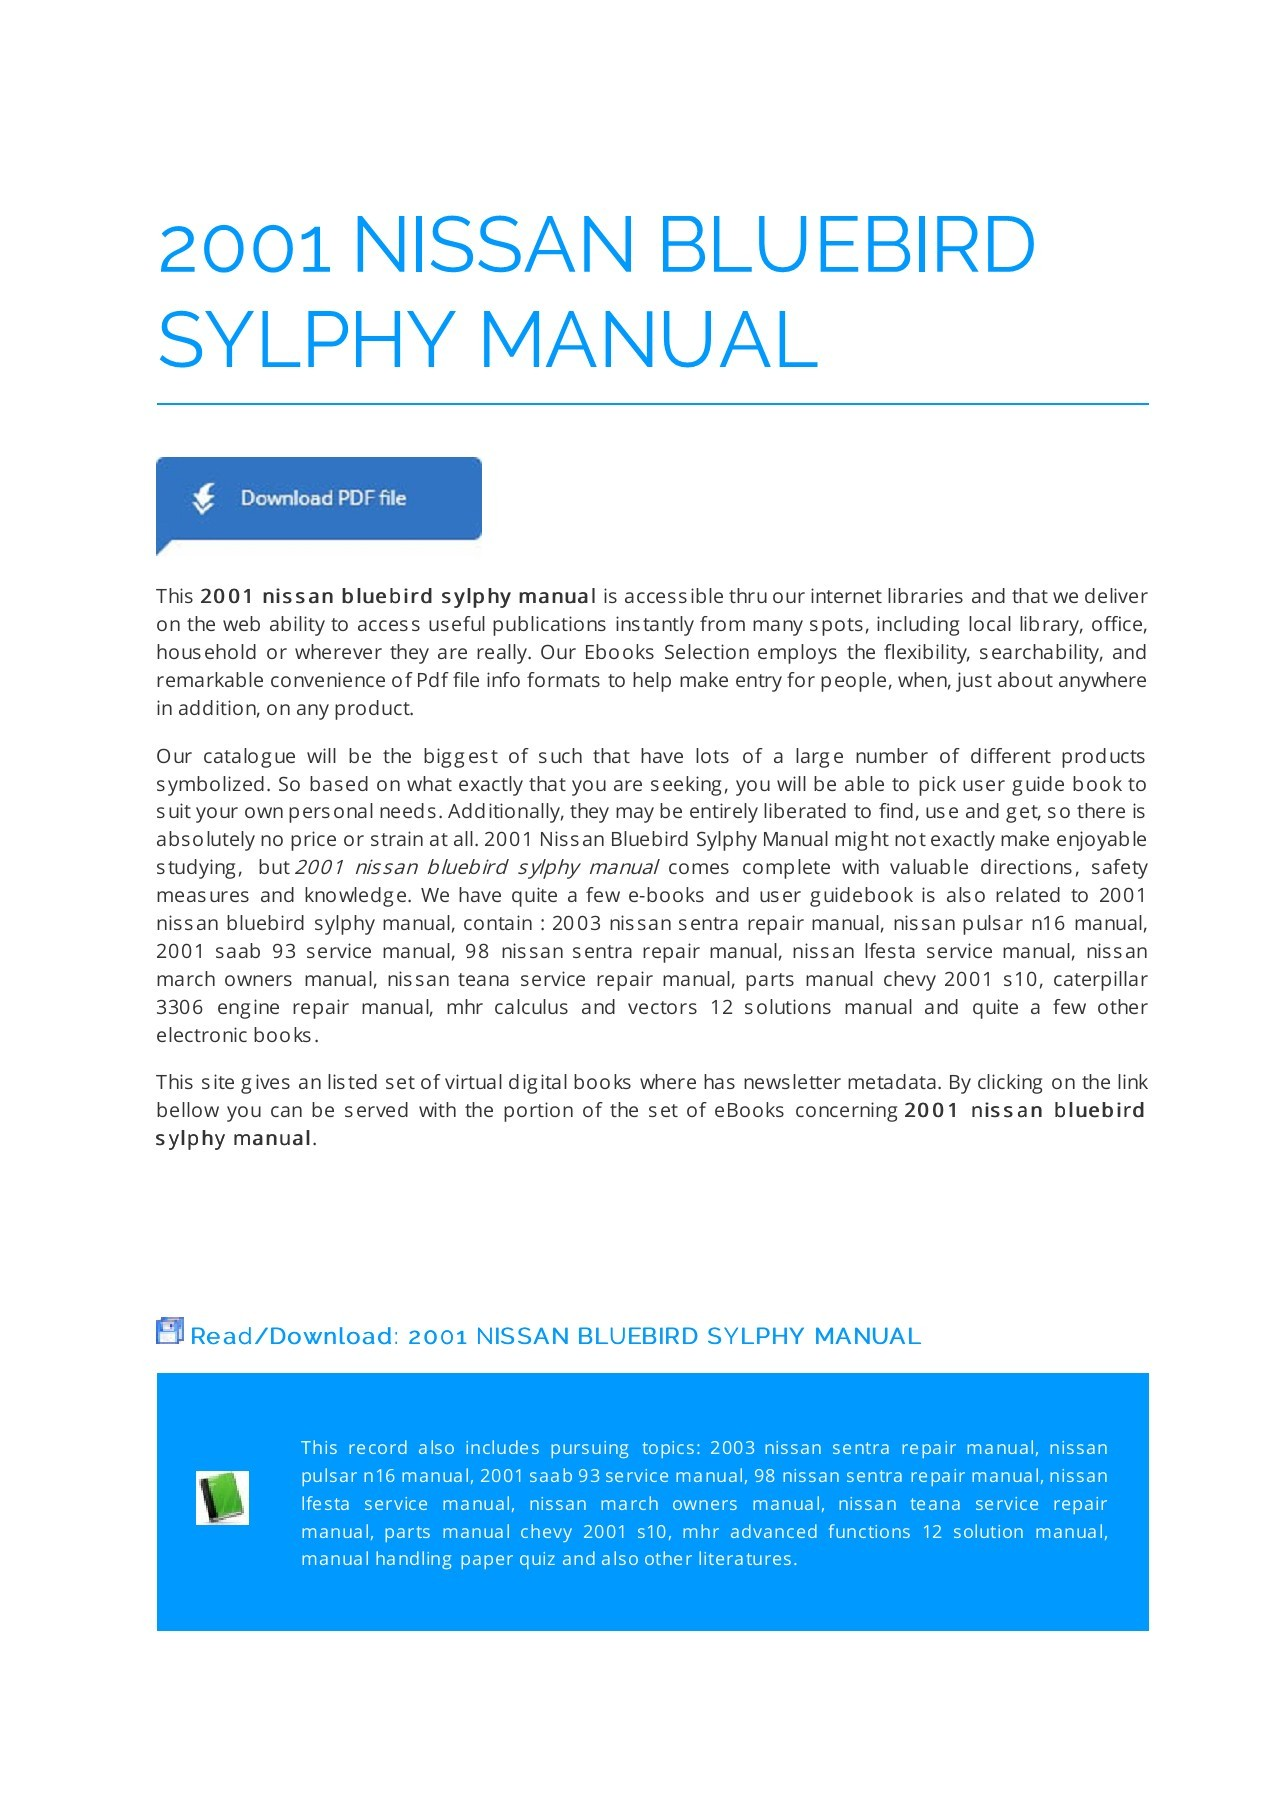 hight resolution of 2001 nissan bluebird sylphy manual manualrepo com pages 1 5 text version fliphtml5